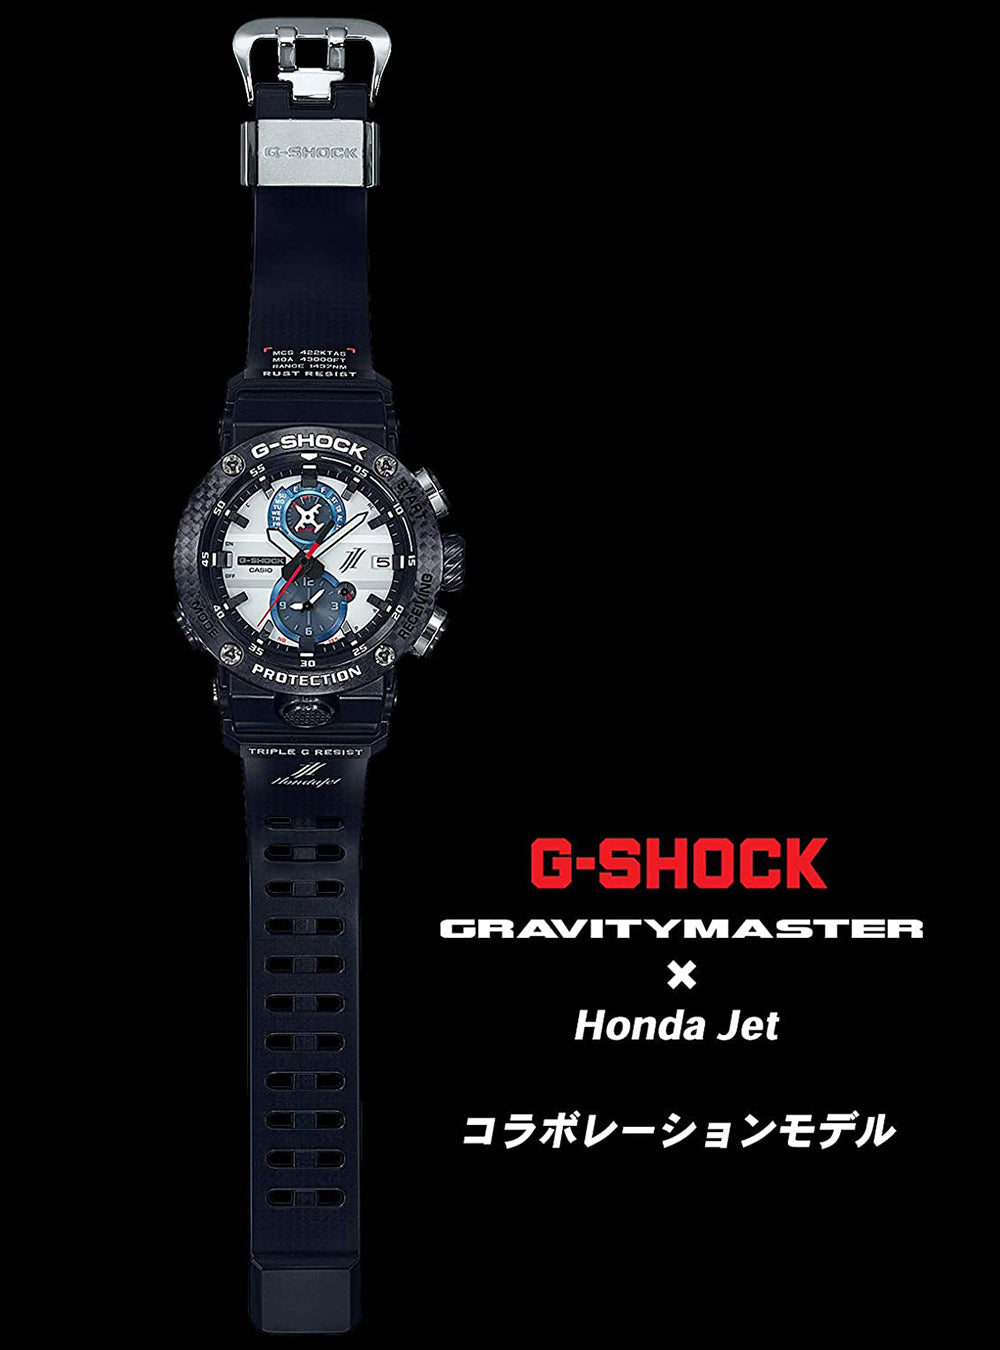 CASIO G-SHOCK GRAVITYMASTER HONDAJET COLLABORATION MODEL GWR-B1000HJ-1AJR MADE IN JAPAN JDM